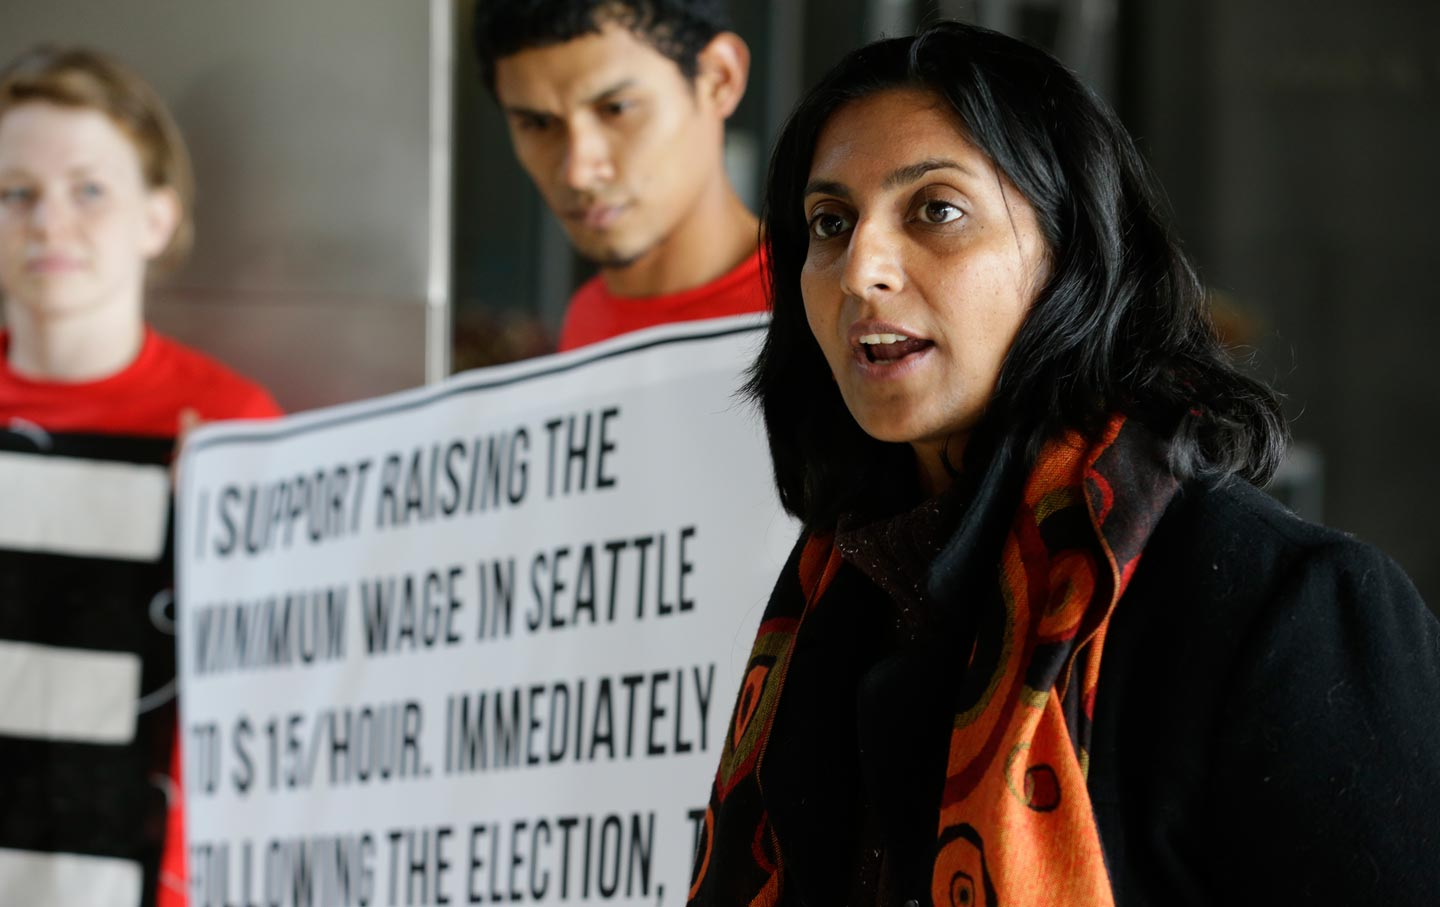 Kshama Sawant $15 minimum wage protest